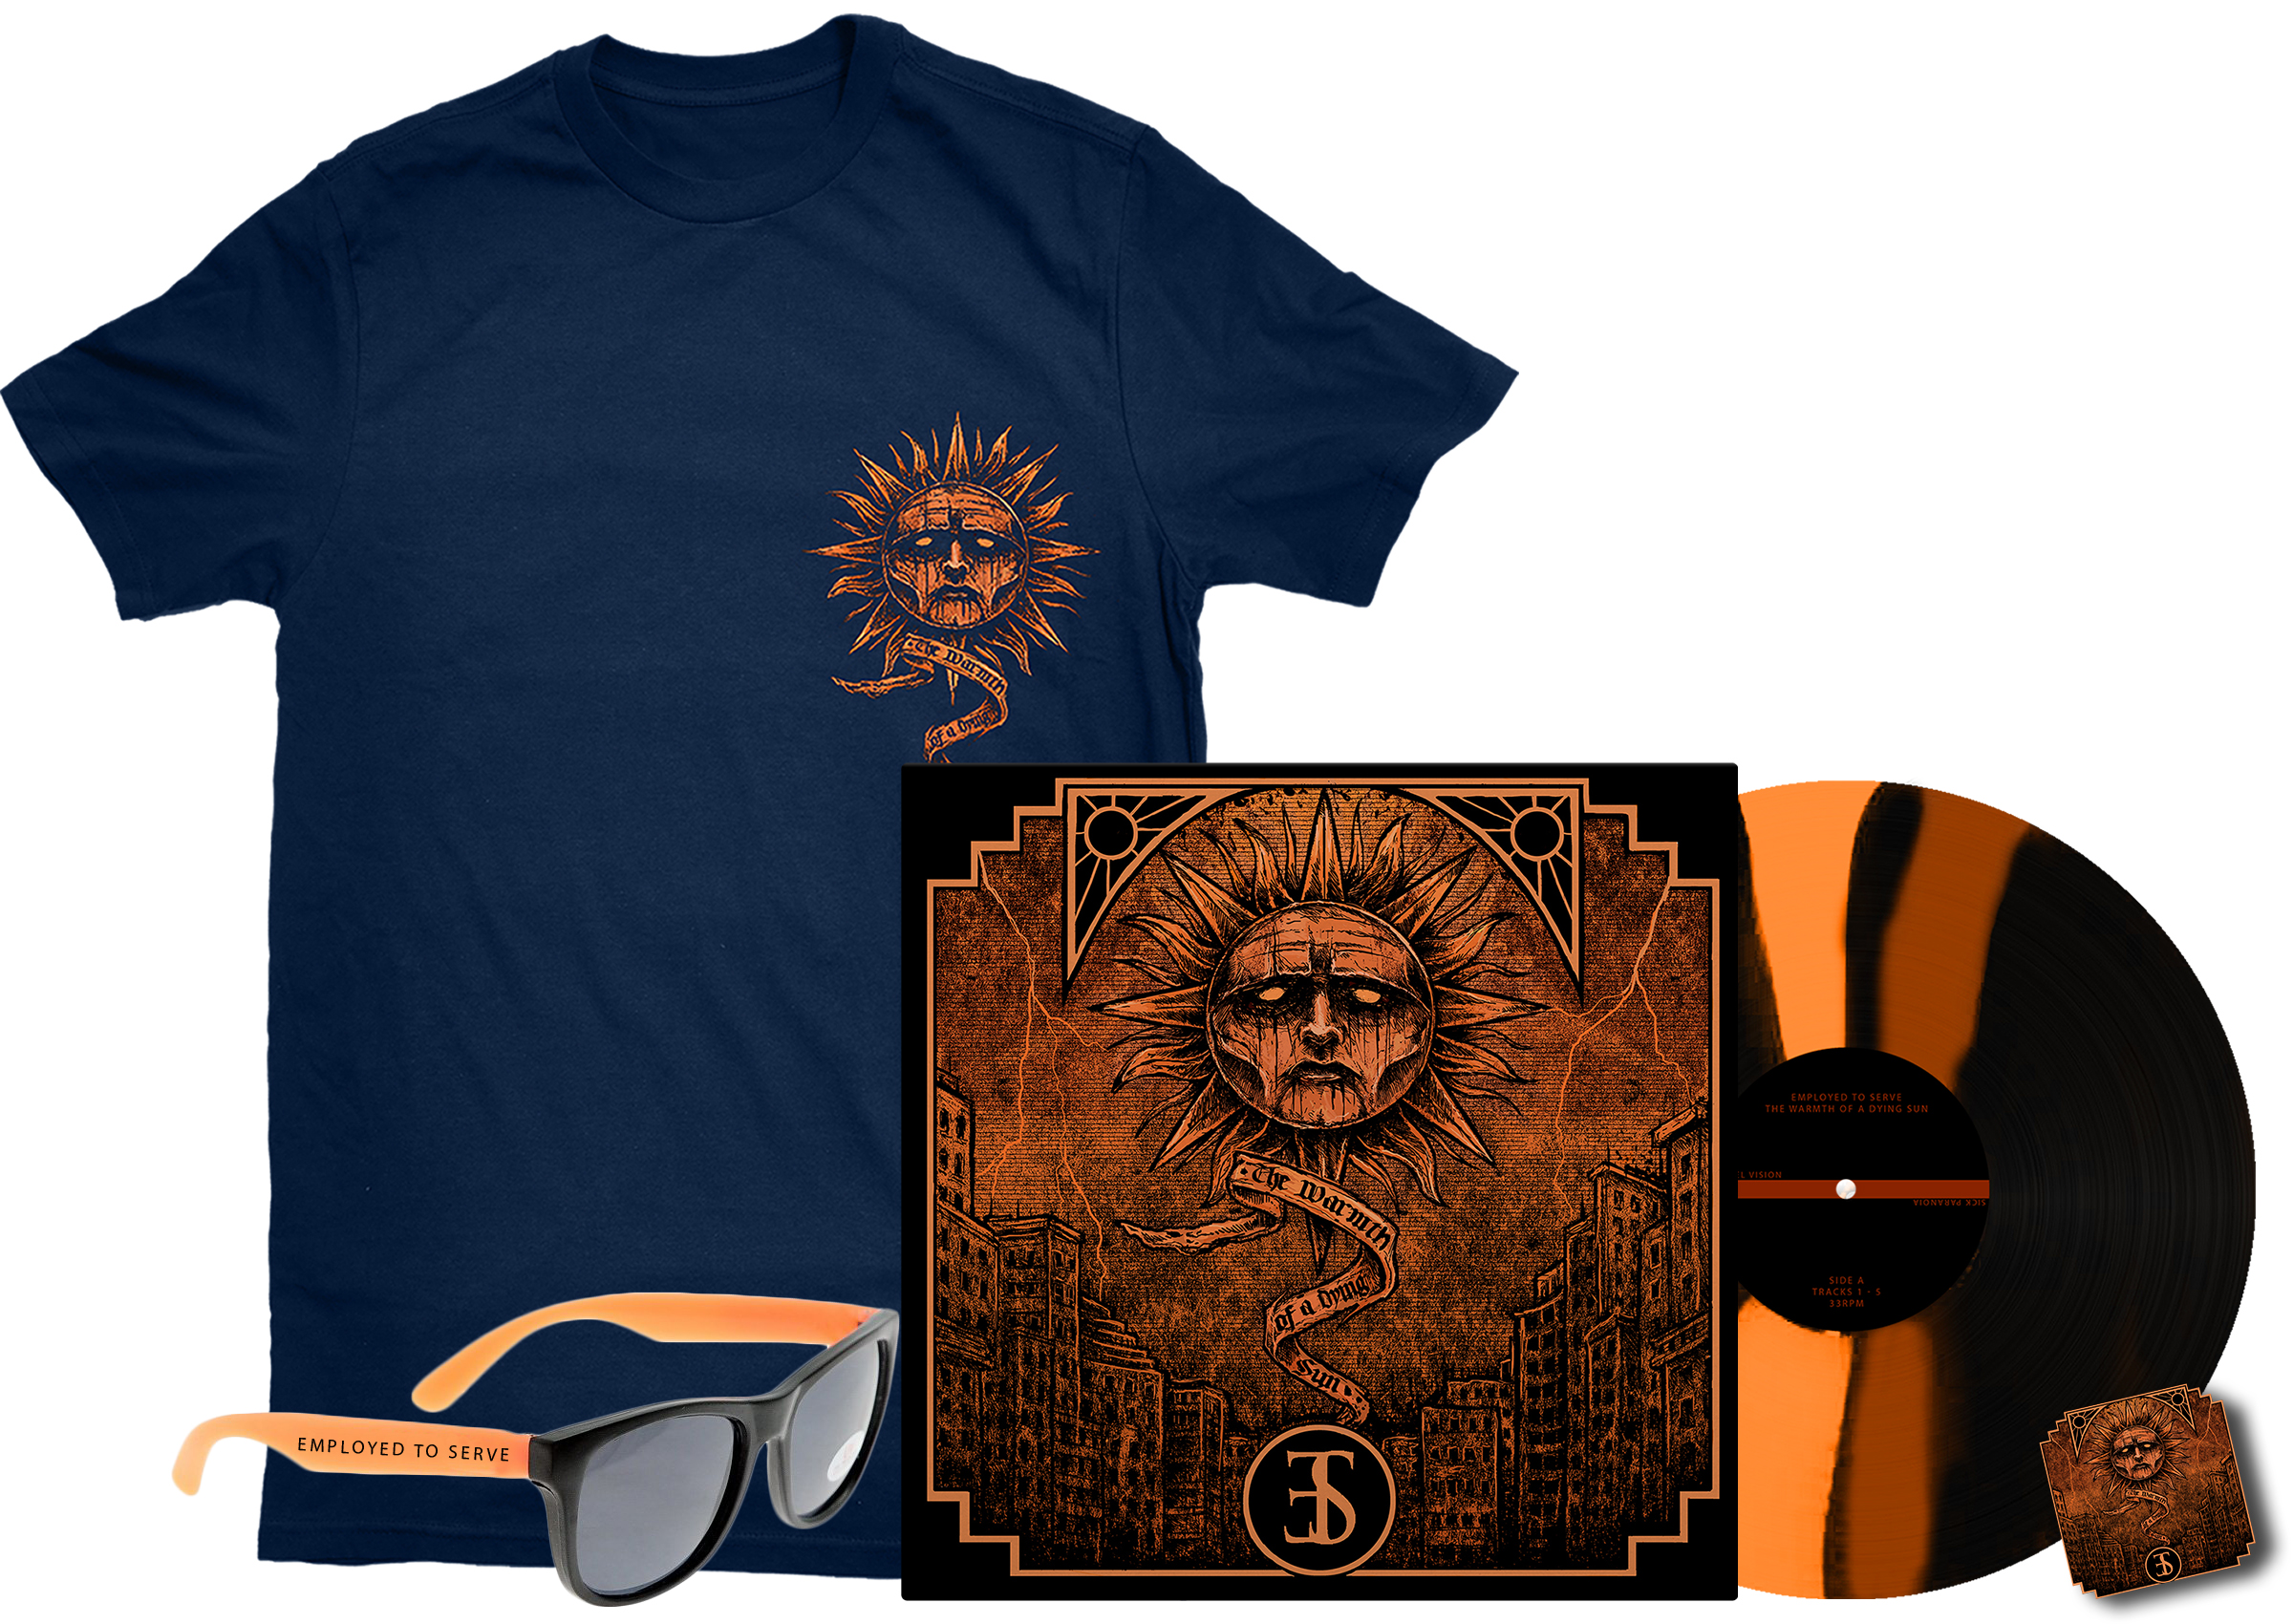 Employed To Serve - The Warmth Of A Dying Sun navy shirt + sunglasses + pin badge + LP PREORDER